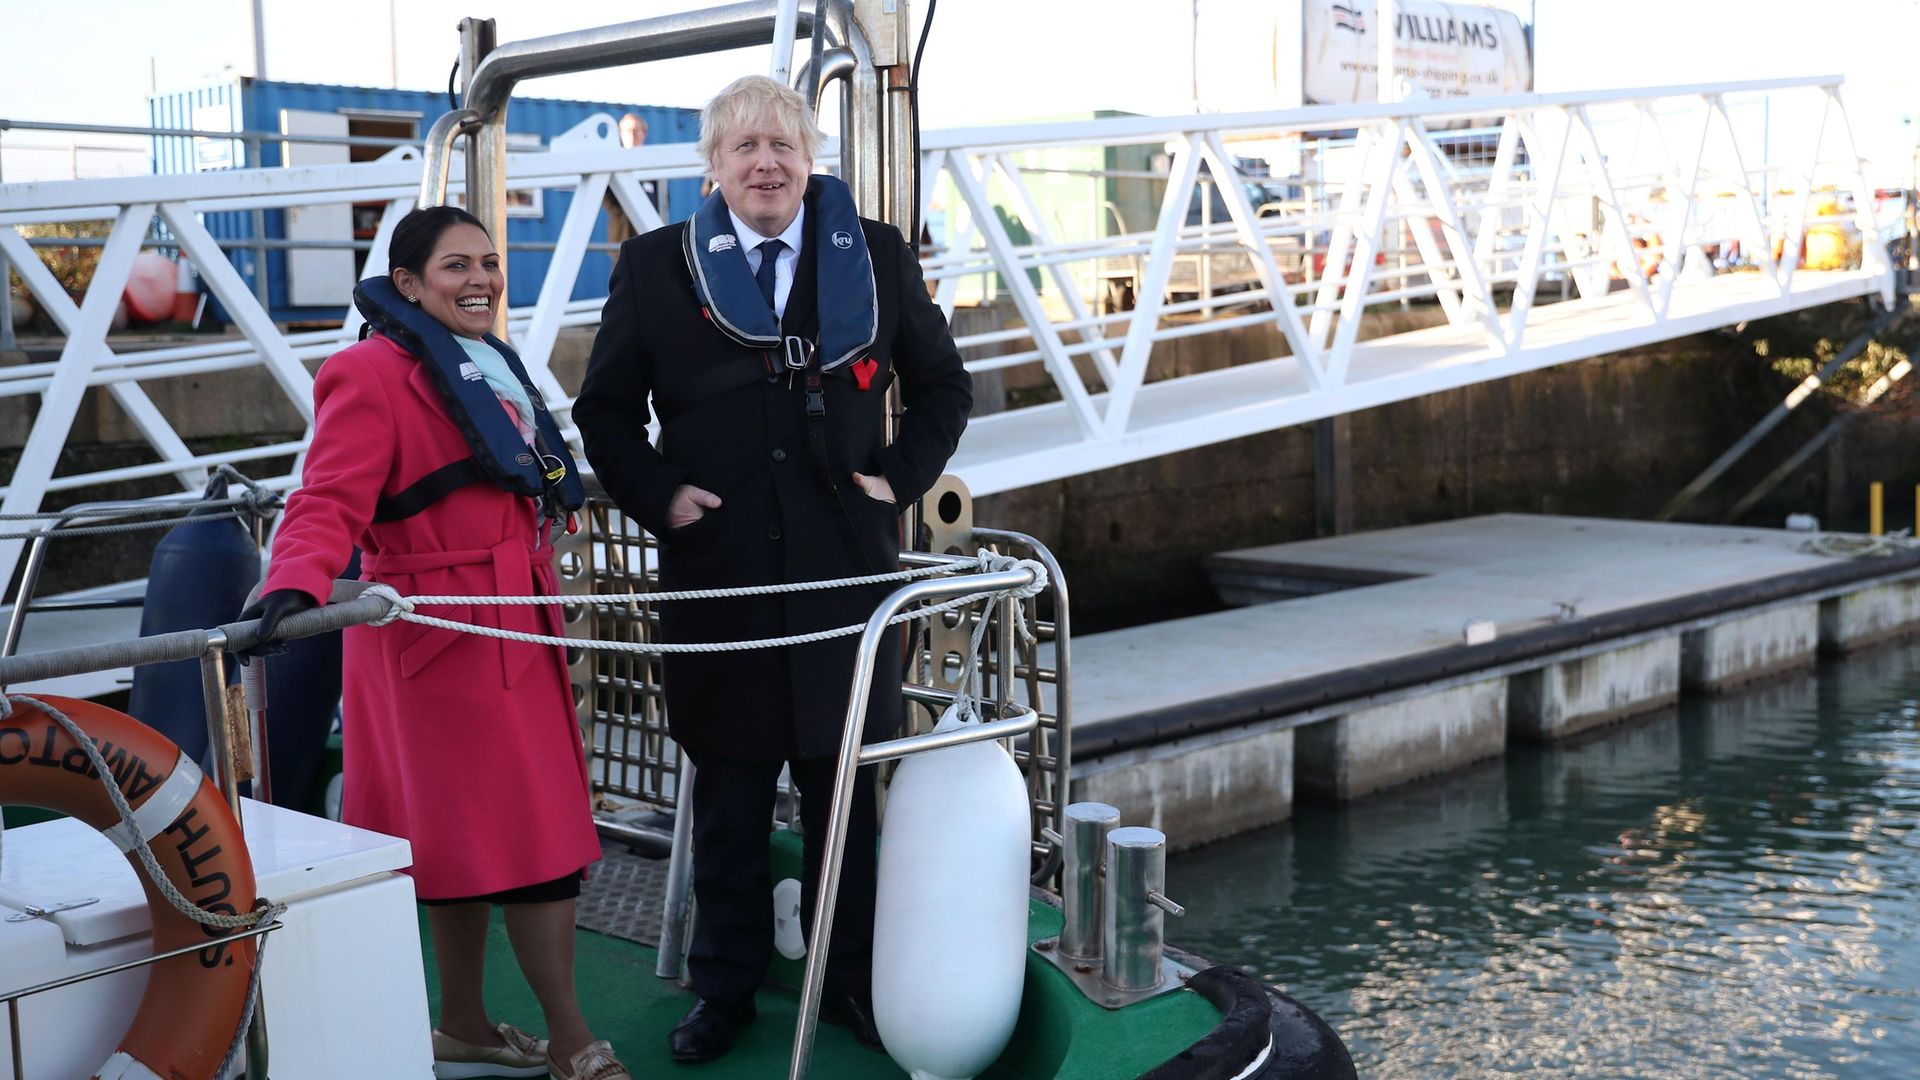 Boris Johnson and Priti Patel on a boat at Southampton docks during the 2019 election campaign - Credit: POOL/AFP via Getty Images